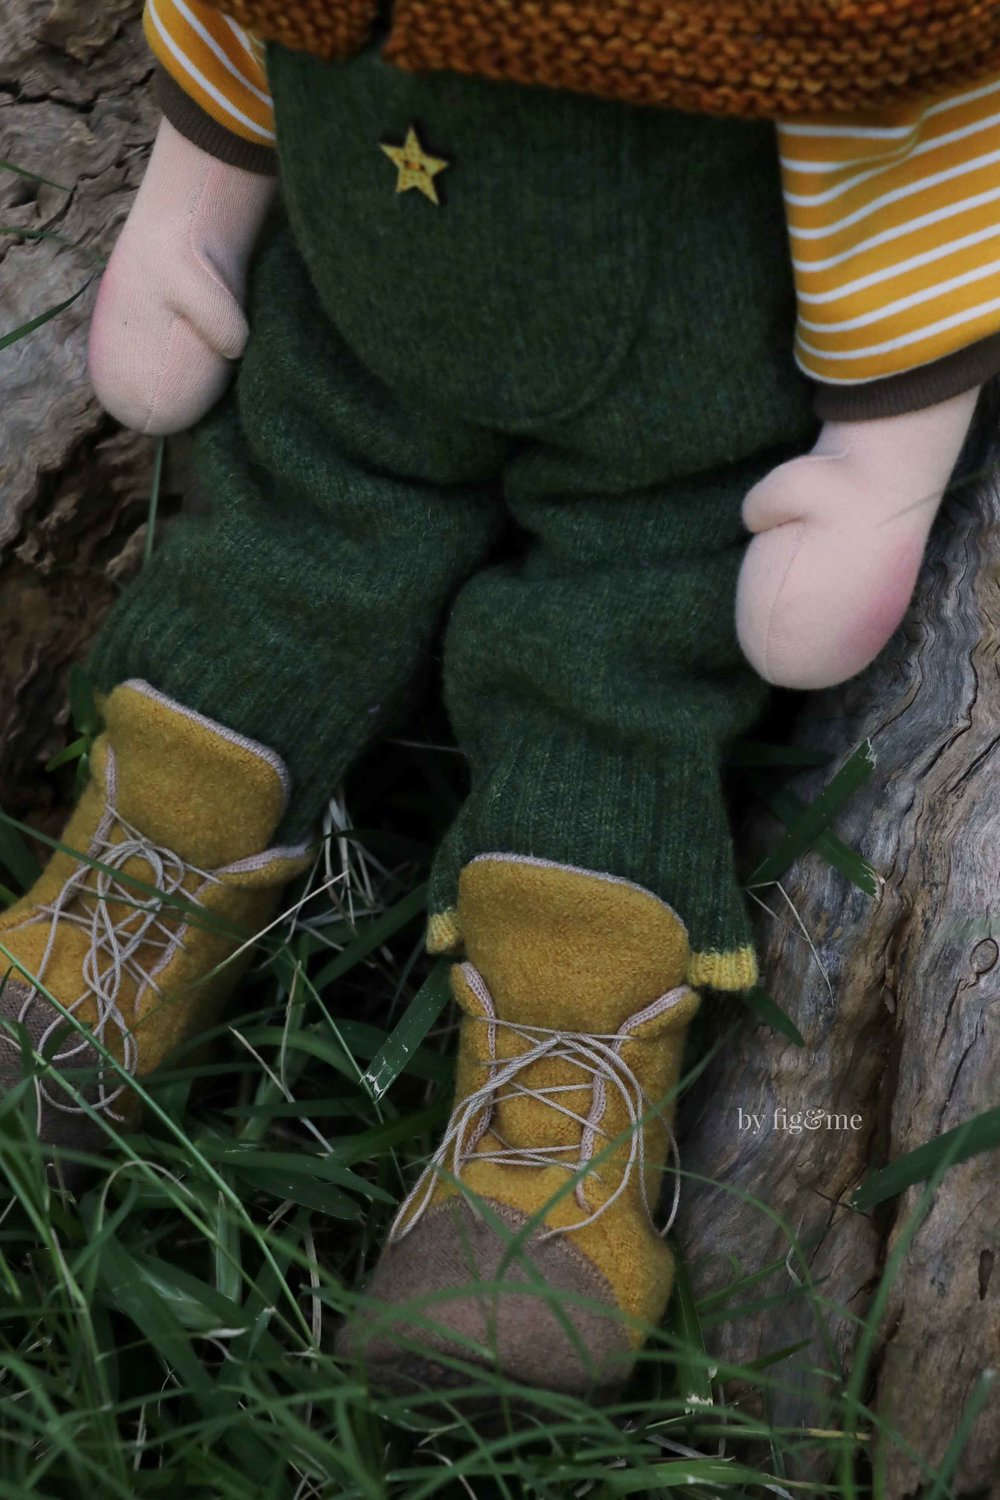 Wulfric wears tall boots, made with felted italian merino and lined with jersey. His lambswool overalls and his organic tshirt.